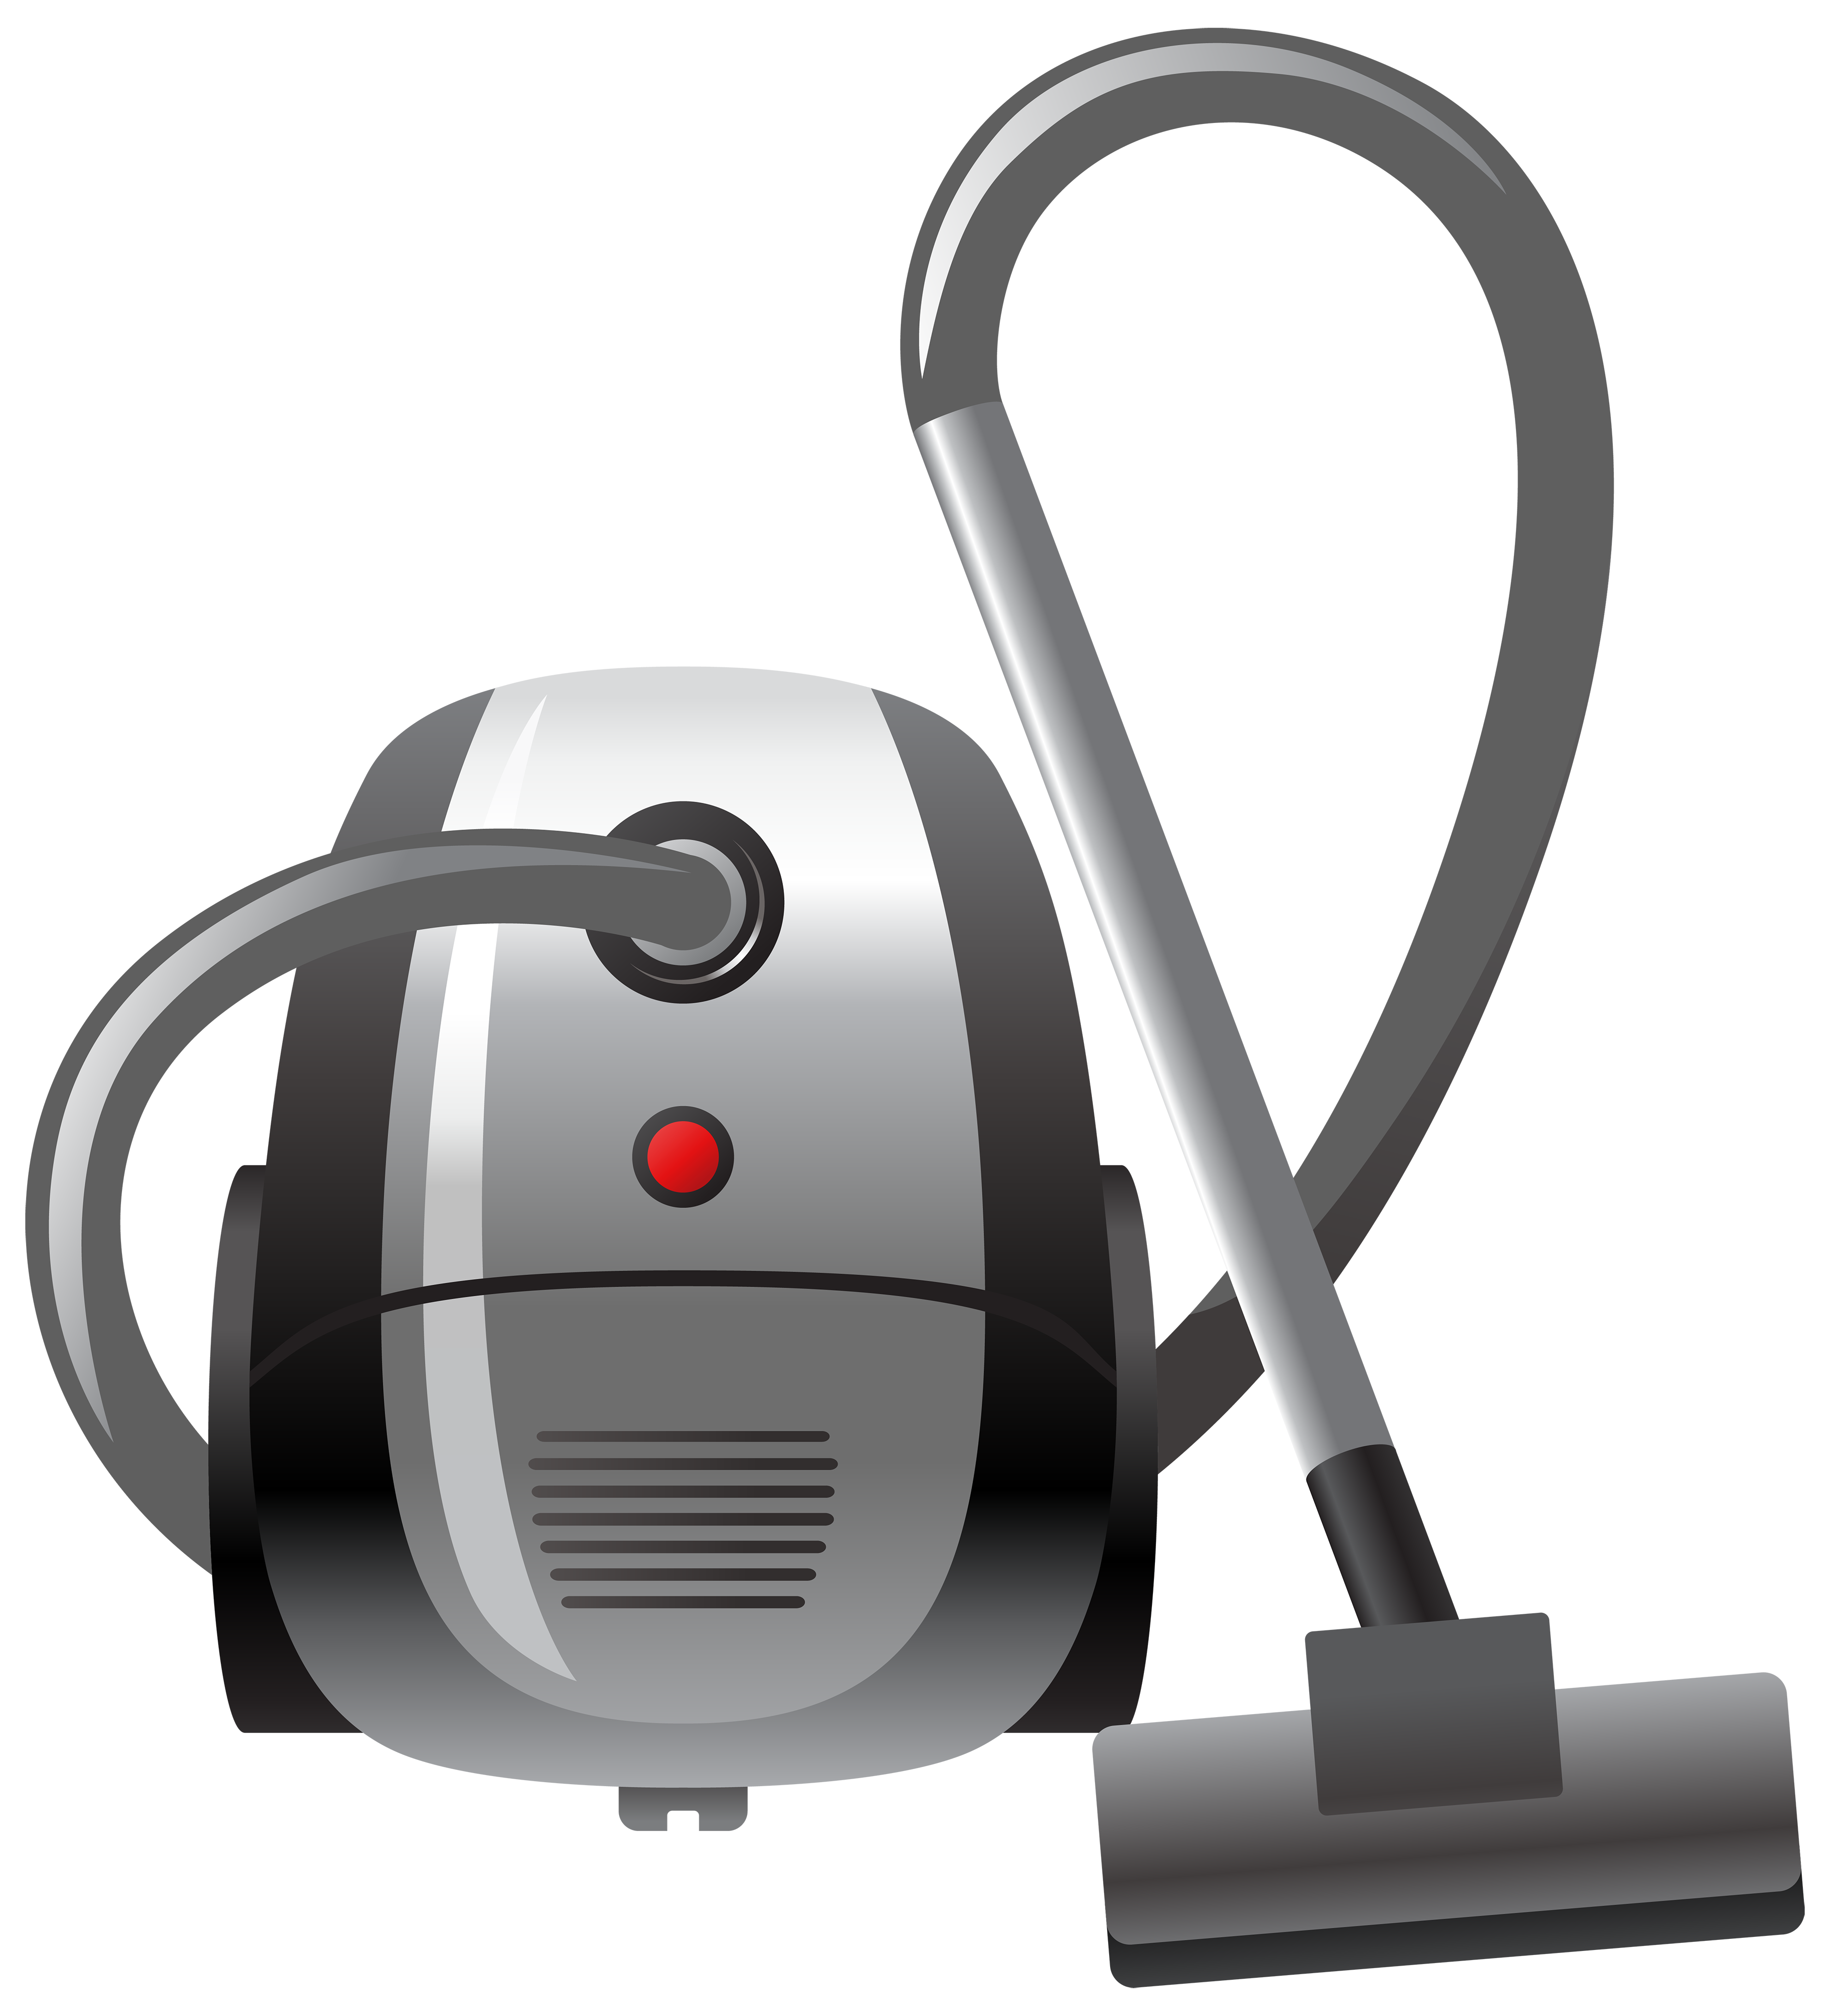 Vacuum Cleaner Png Clipart